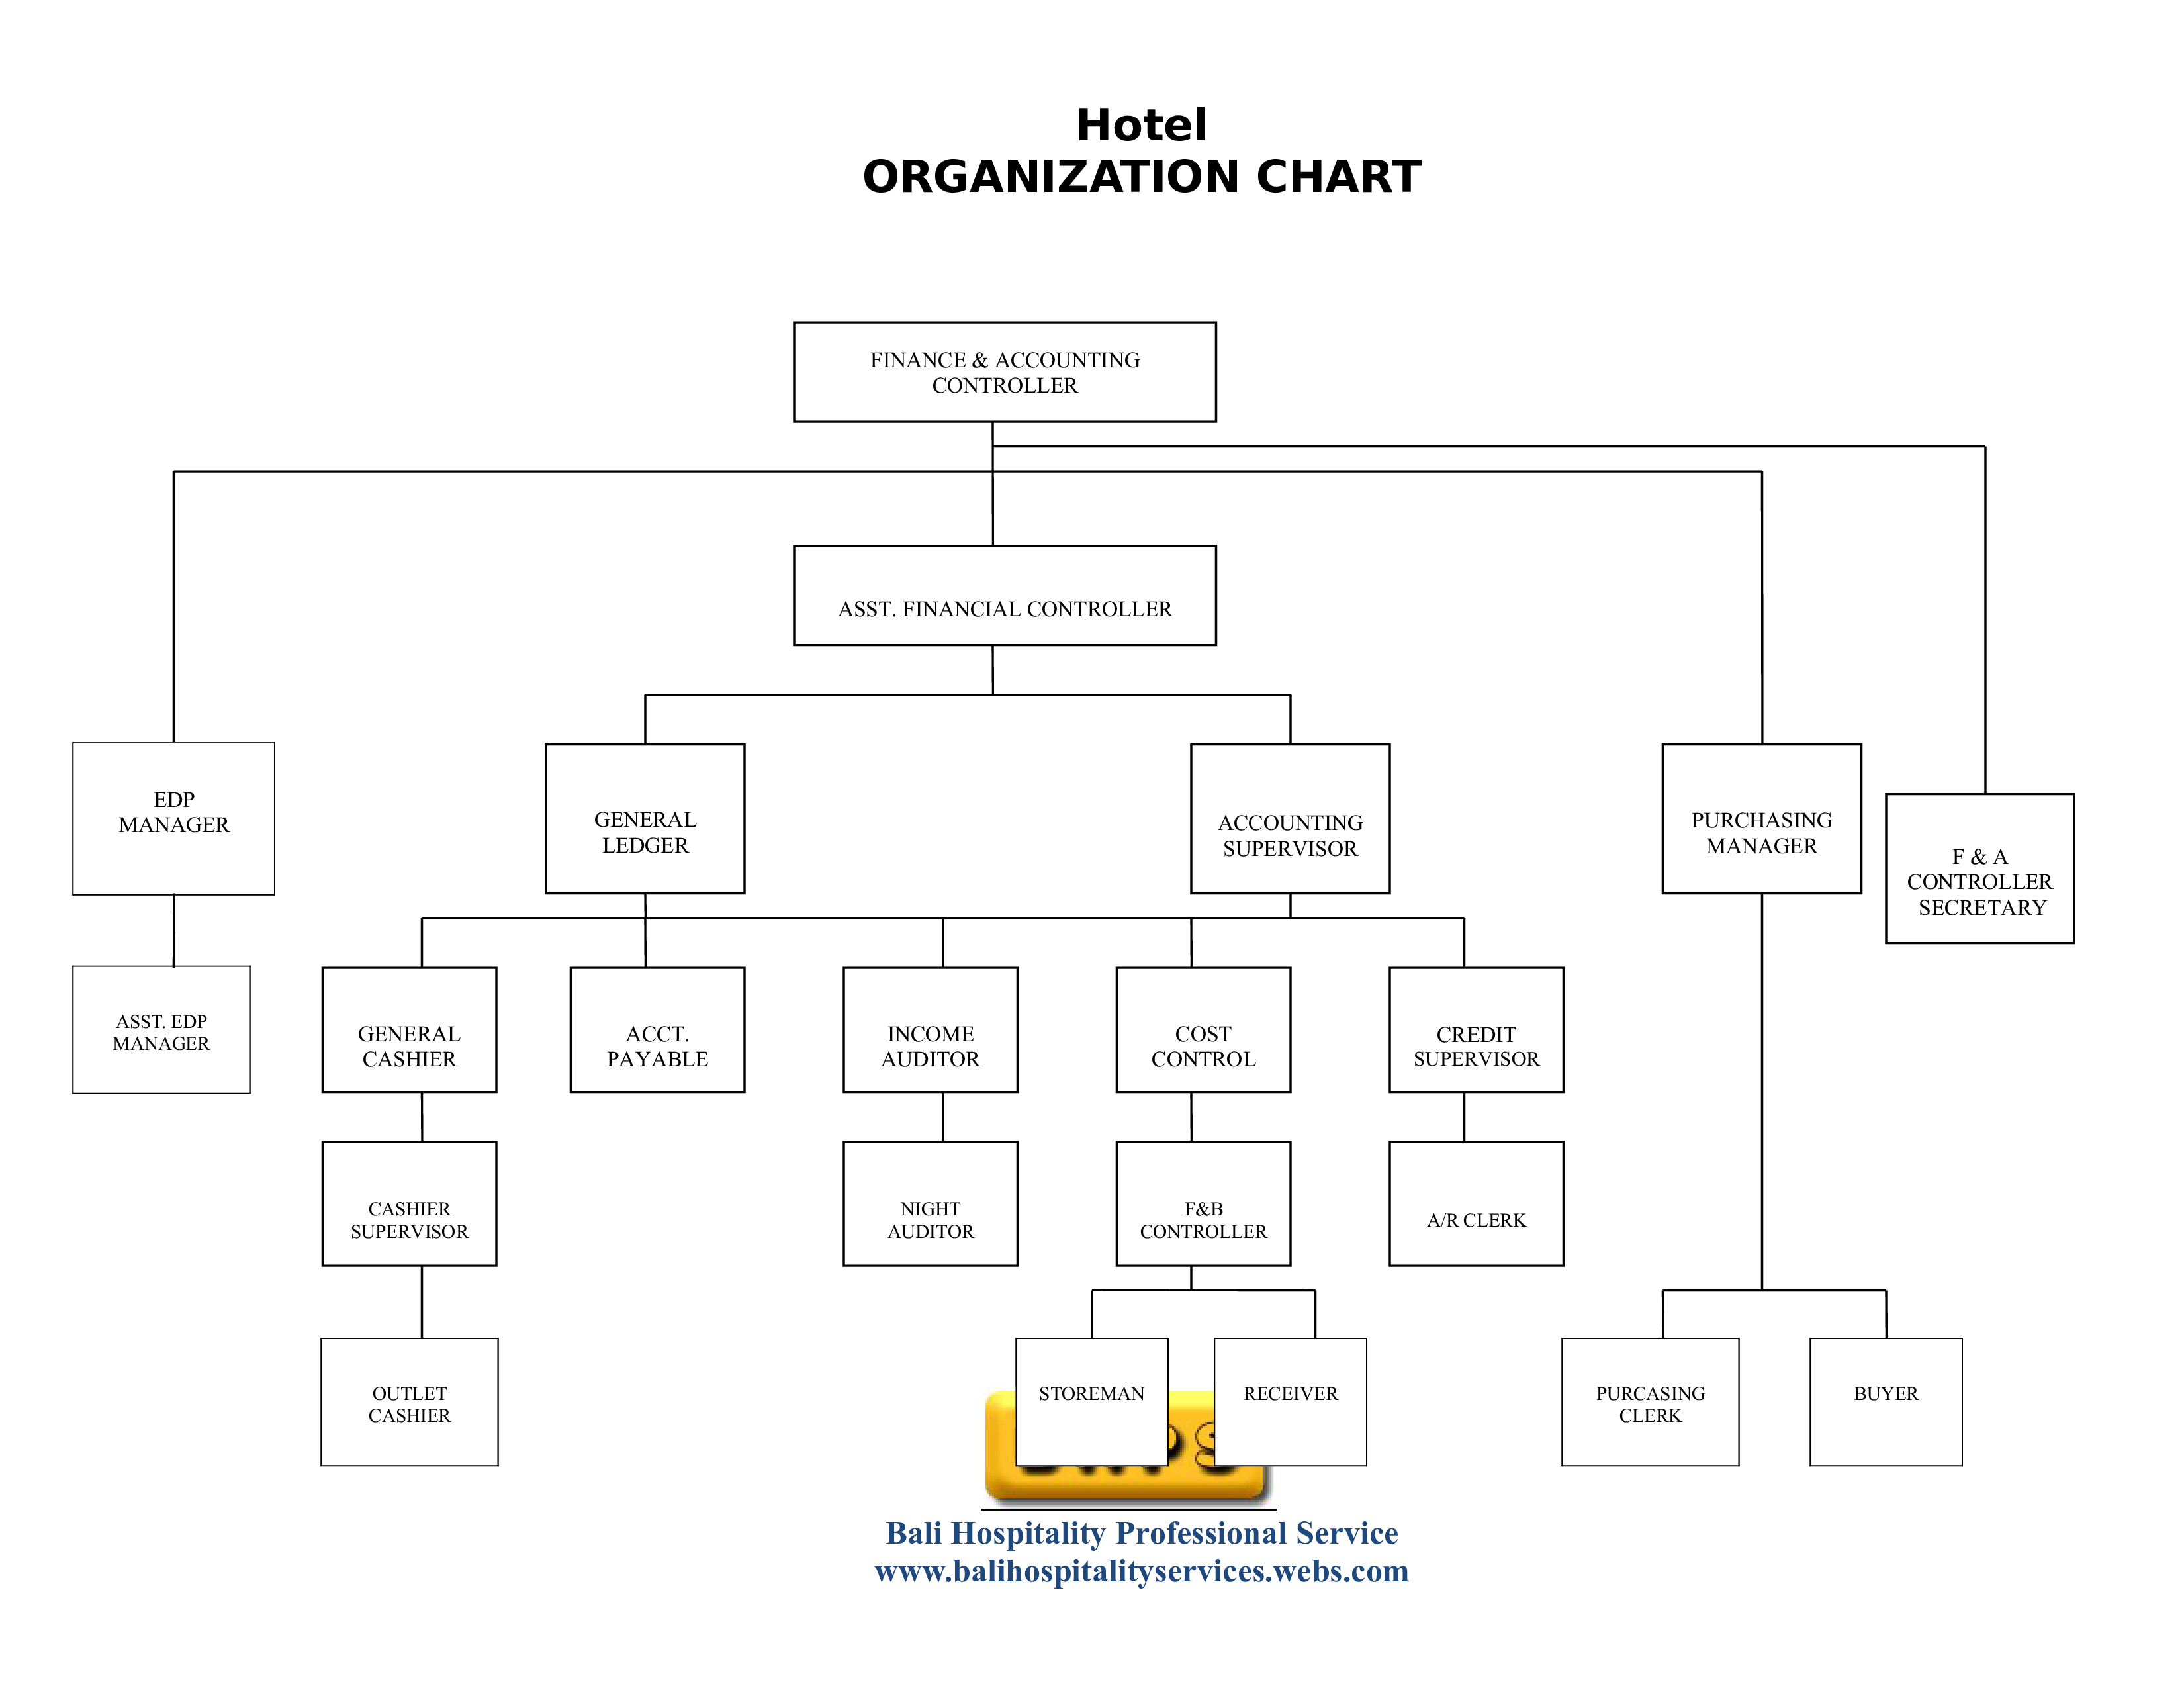 Hotel Organizational Chart How To Create A Hotel Organizational Chart Download This Hotel Organizational C Organizational Chart Organization Chart Templates